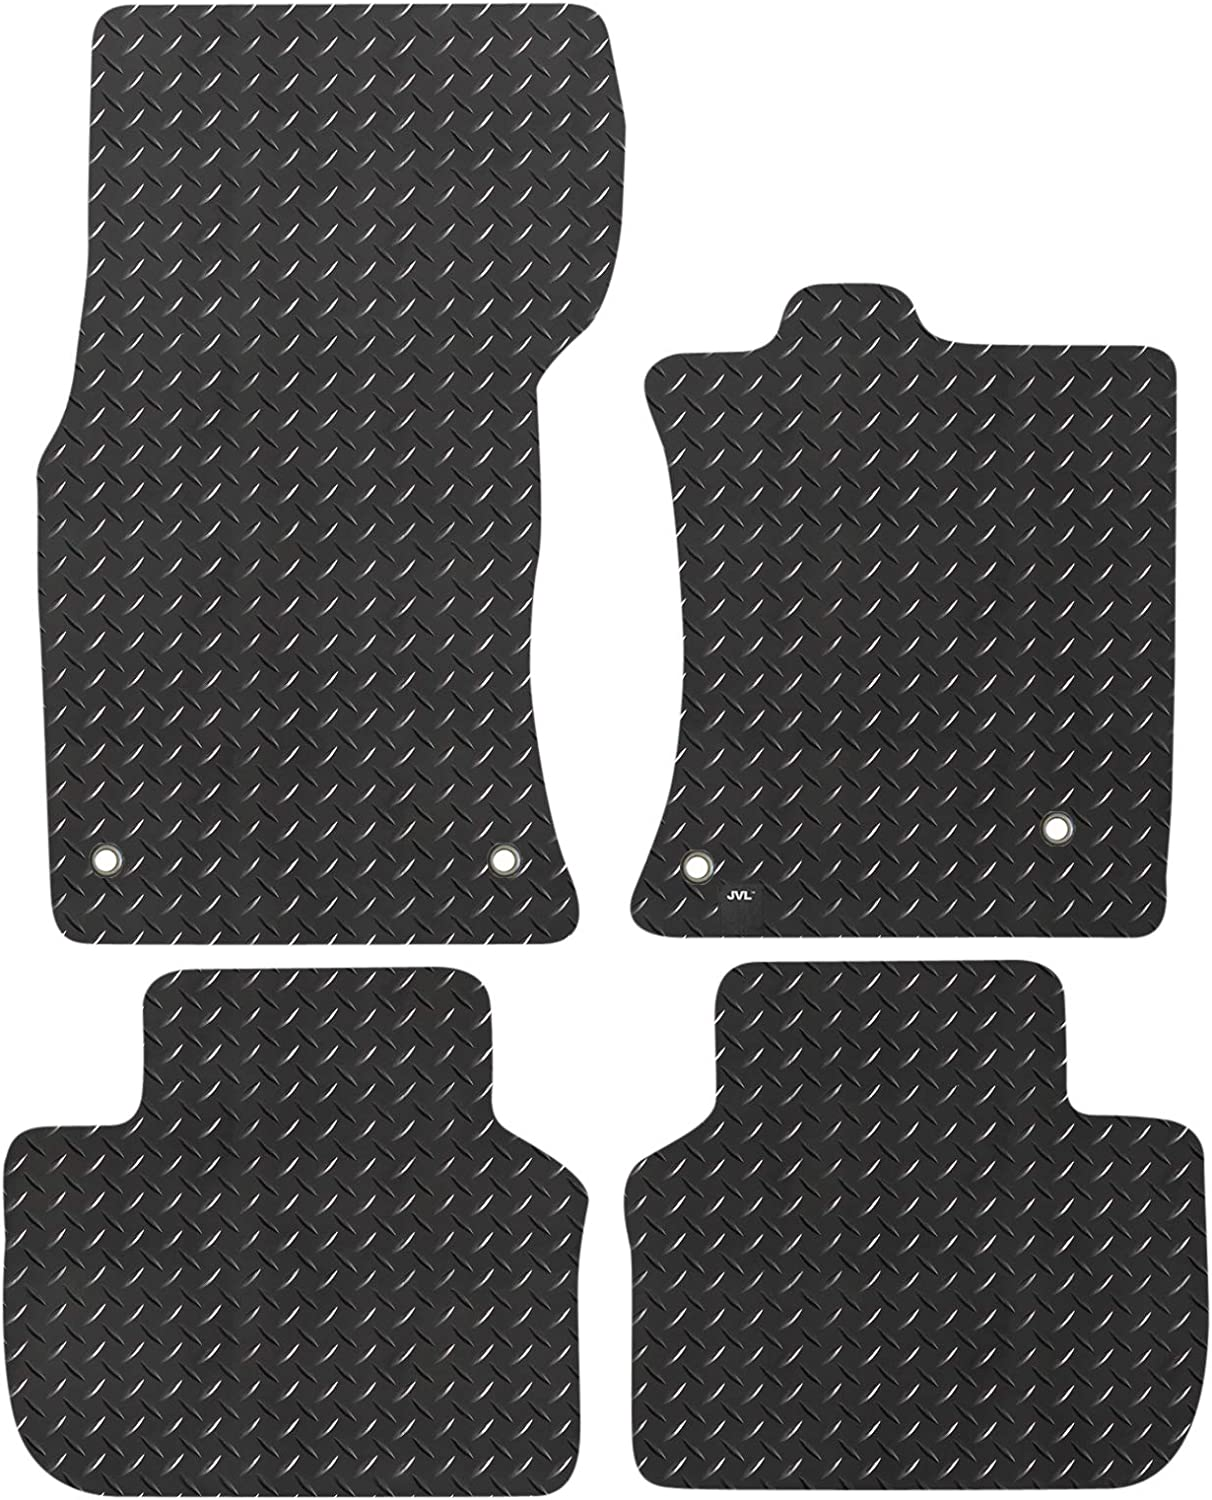 2016-On JVL JVL3707R Fully Tailored Rubber Car Mat Set for XF X260